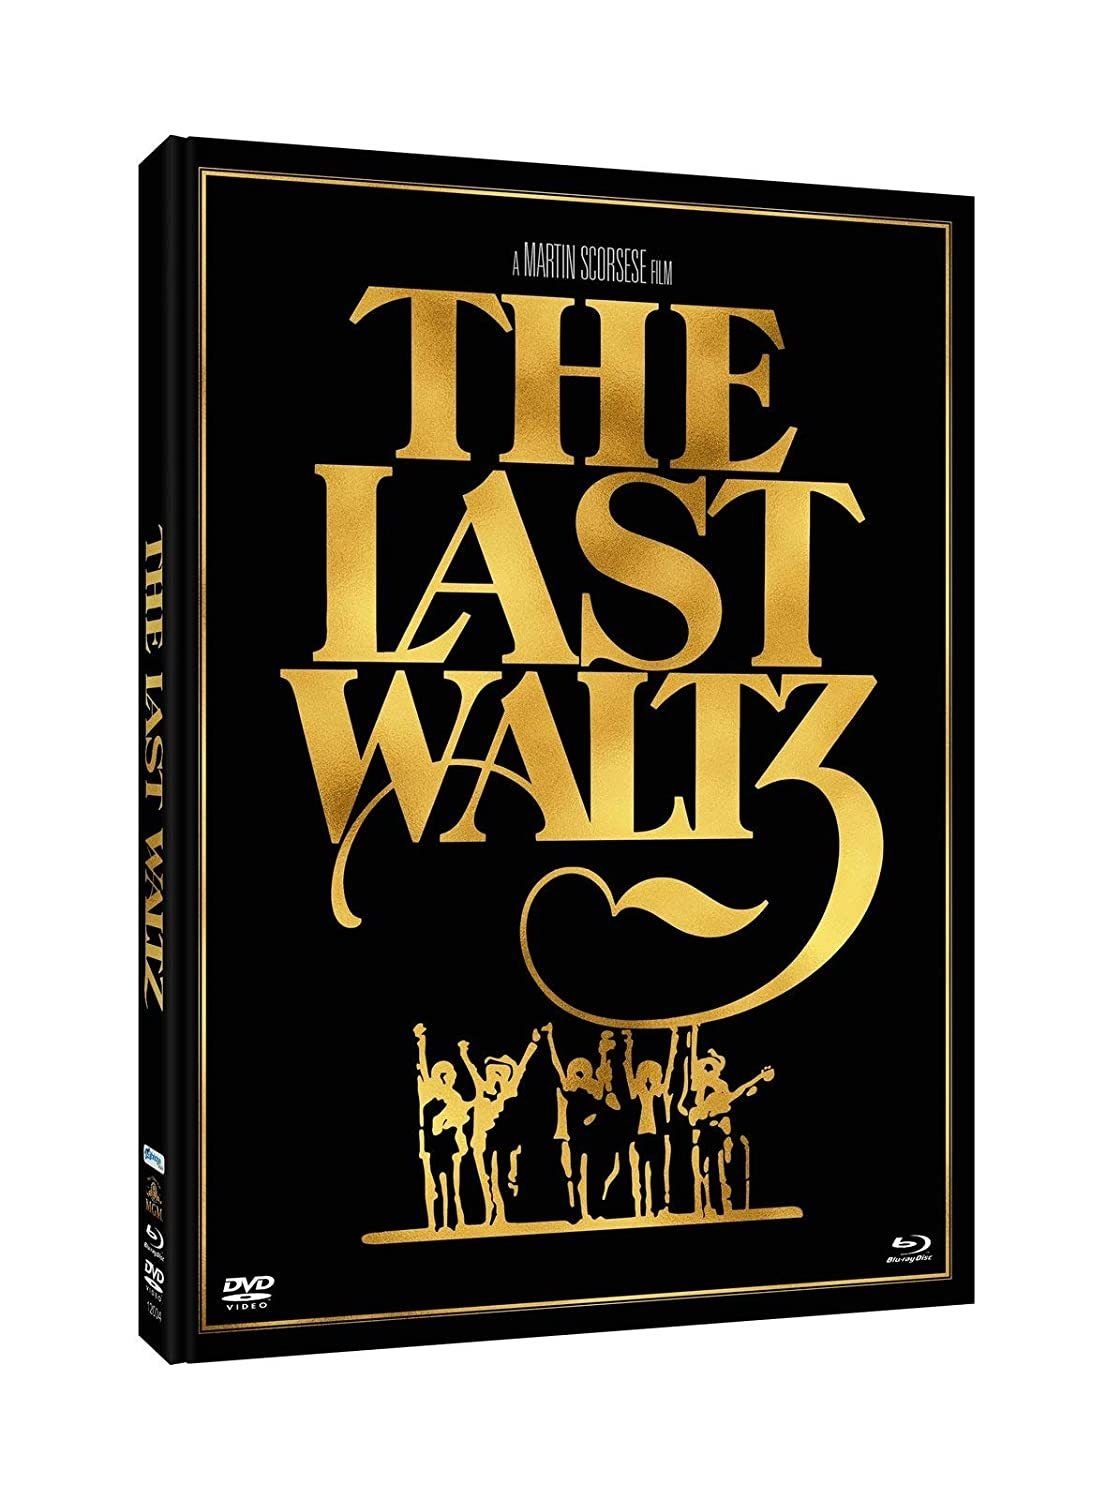 THE BAND SPECIAL - The Last Waltz - Robbie Robertson, The Band 50th & The Irishman OST